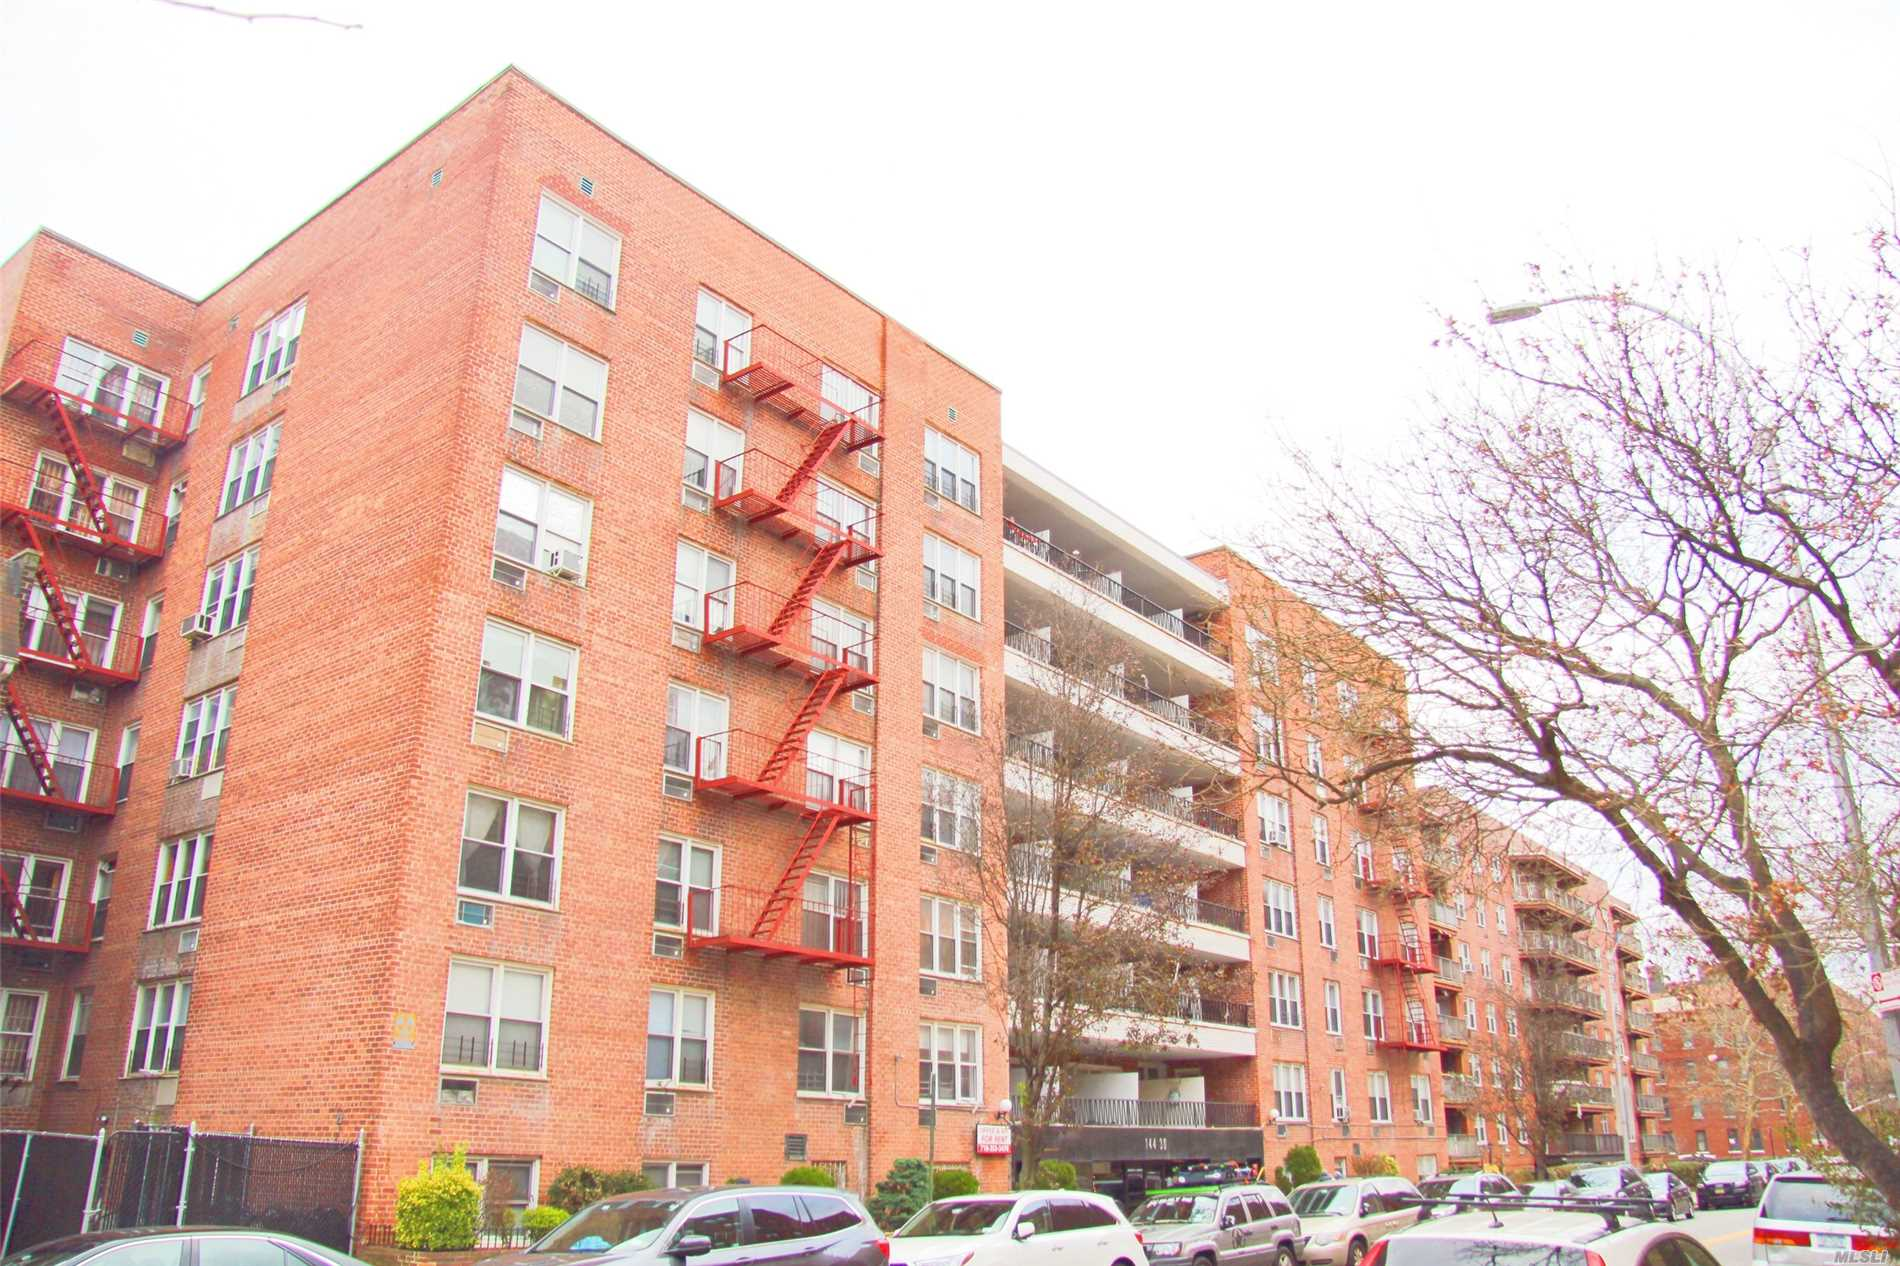 Very Large Studio Apt. Around 650 Sqft. Big Eik. 7 Mins To Subway. Sublease Allow After 2Yrs.